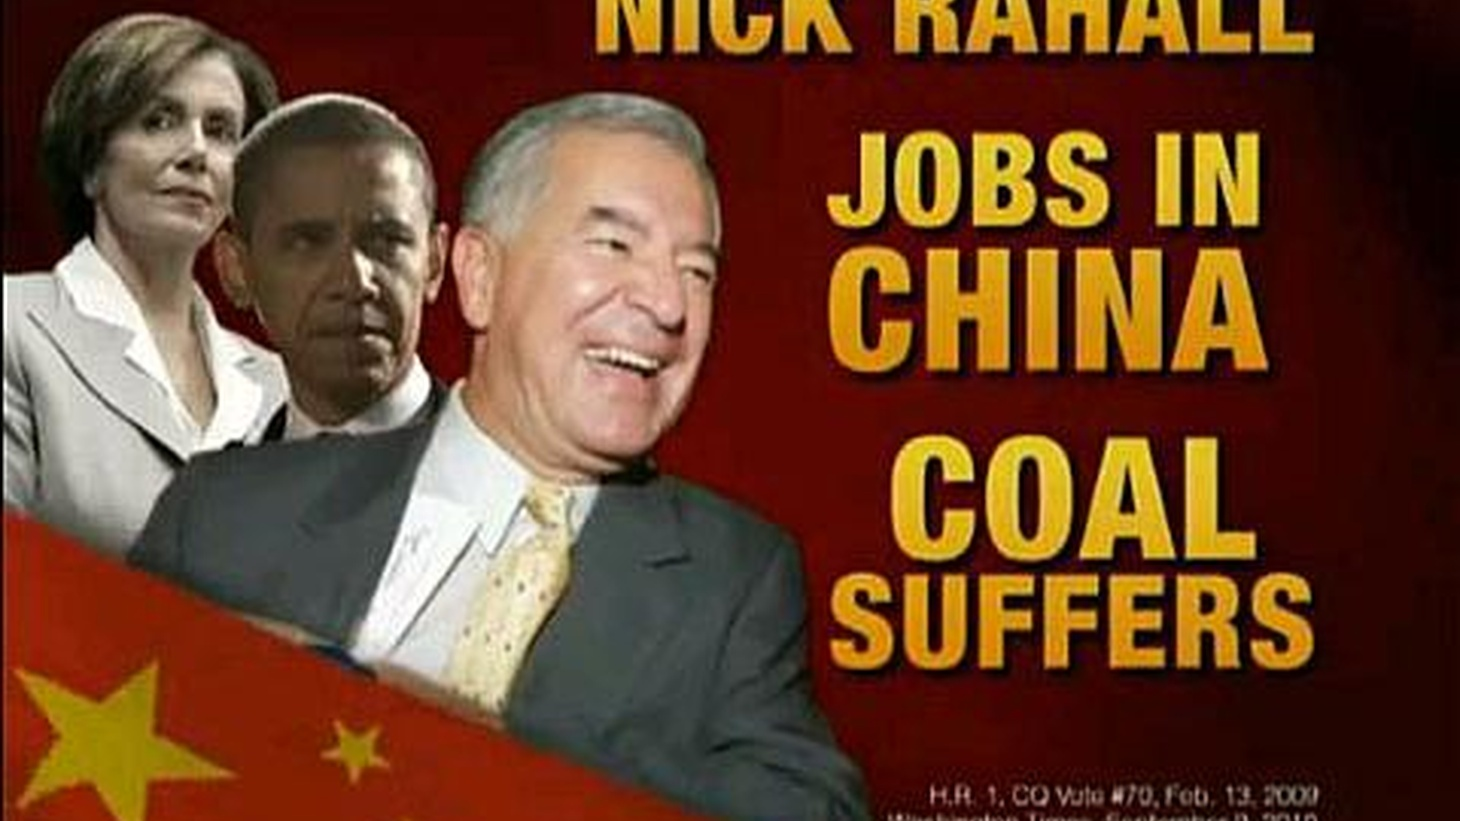 In November election campaigns, both parties are blaming China — in different ways -- for America's declining economy. Would new policies make a difference? Is it time for a trade war or is the US responsible for its own problems? Also, protests heat up in France over pension reform, and an update on Chile and its trapped miners.